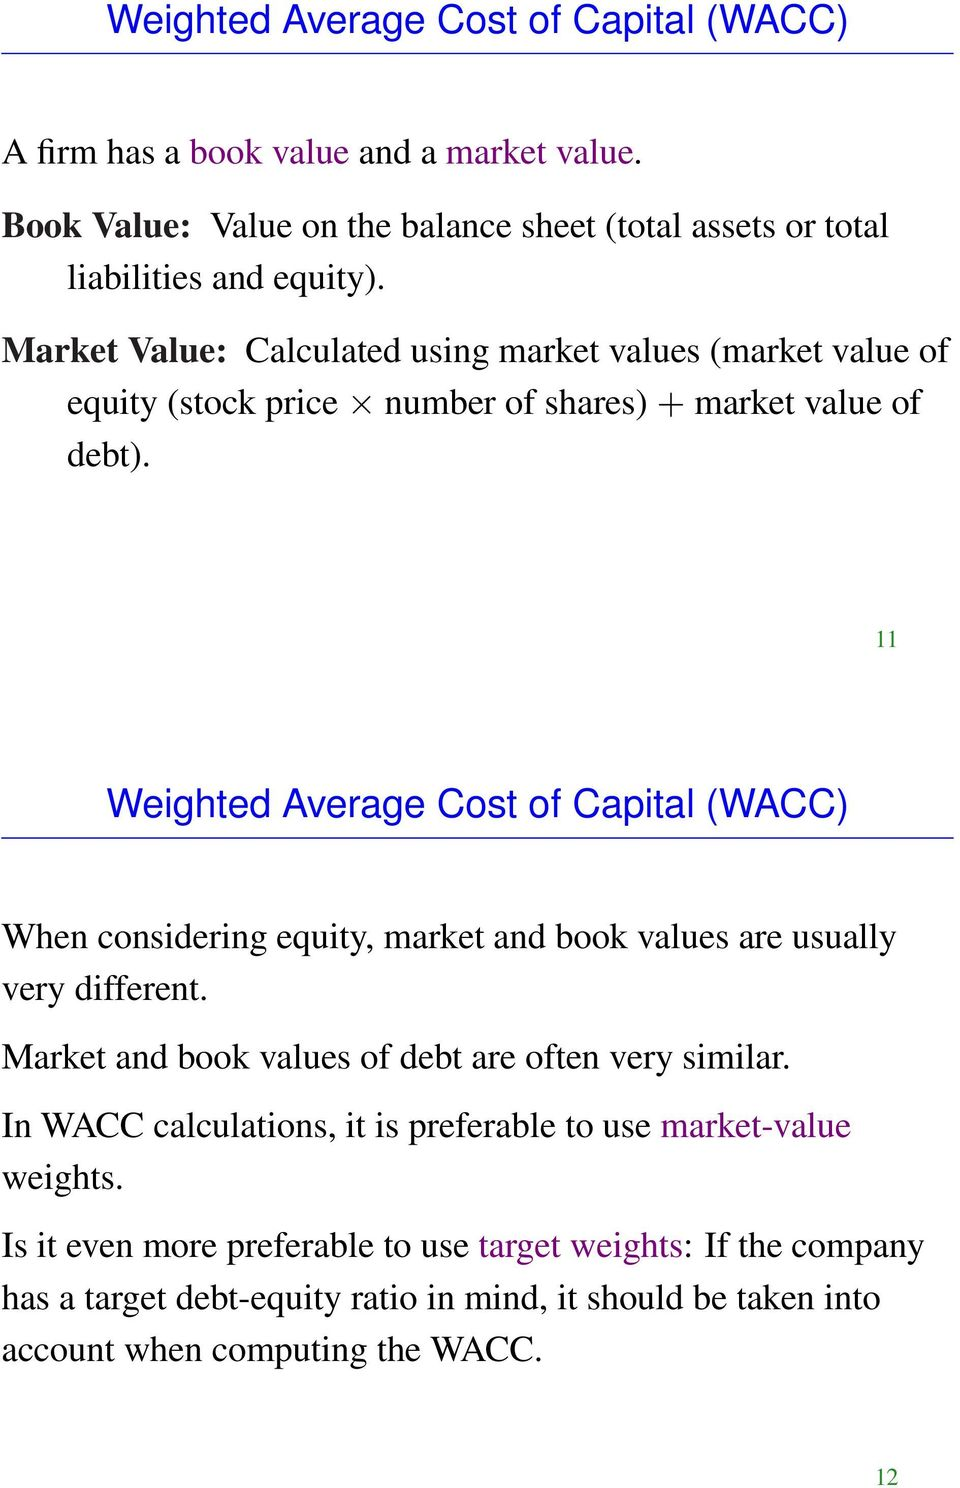 11 Weighted Average Cost of Capital (WACC) When considering equity, market and book values are usually very different. Market and book values of debt are often very similar.